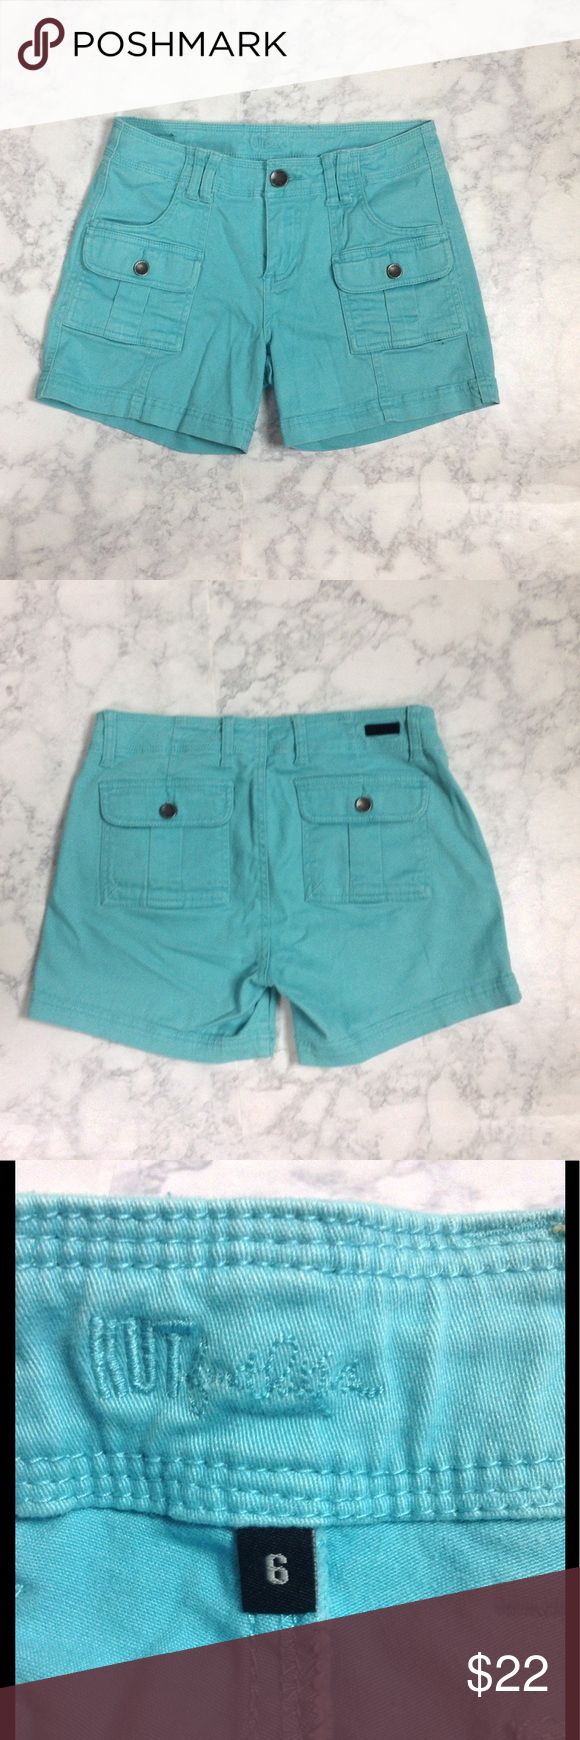 """Kut from the Kloth teal shorts size:6 Beautiful & comfortable teal colored soft cotton shorts. Waist: 32"""". Inseam: 4.5"""". Size: 6. EUC Kut from the Kloth Shorts"""